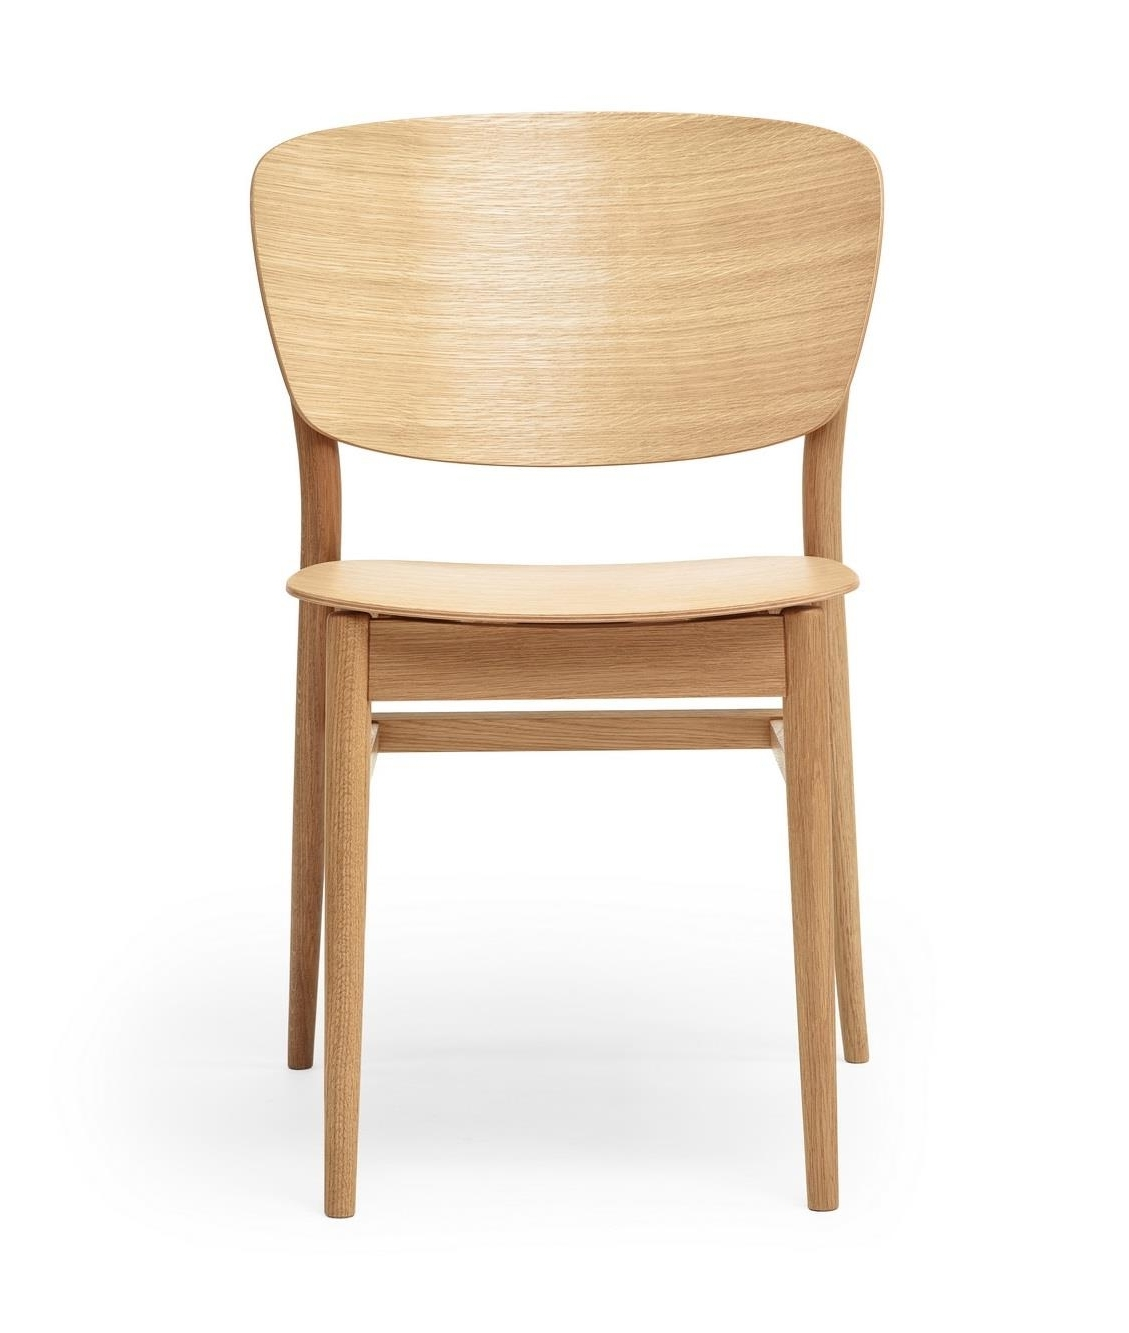 Fashionable Valencia Side Chair, Wooden – Telegraph Contract Furniture For Valencia Side Chairs With Upholstered Seat (View 8 of 20)